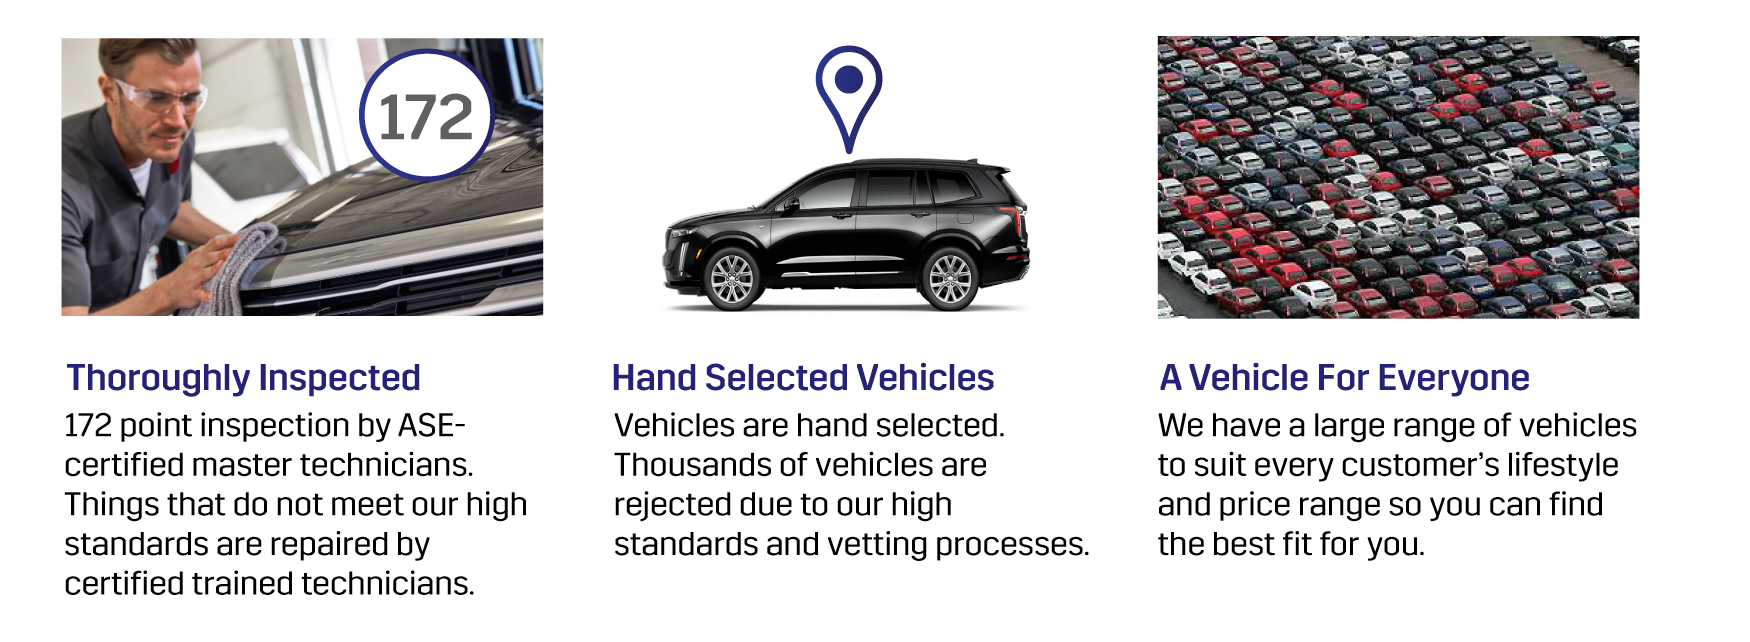 Thoroughly Inspected, Hand-Selected Vehicles, A Vehicle for Everyone